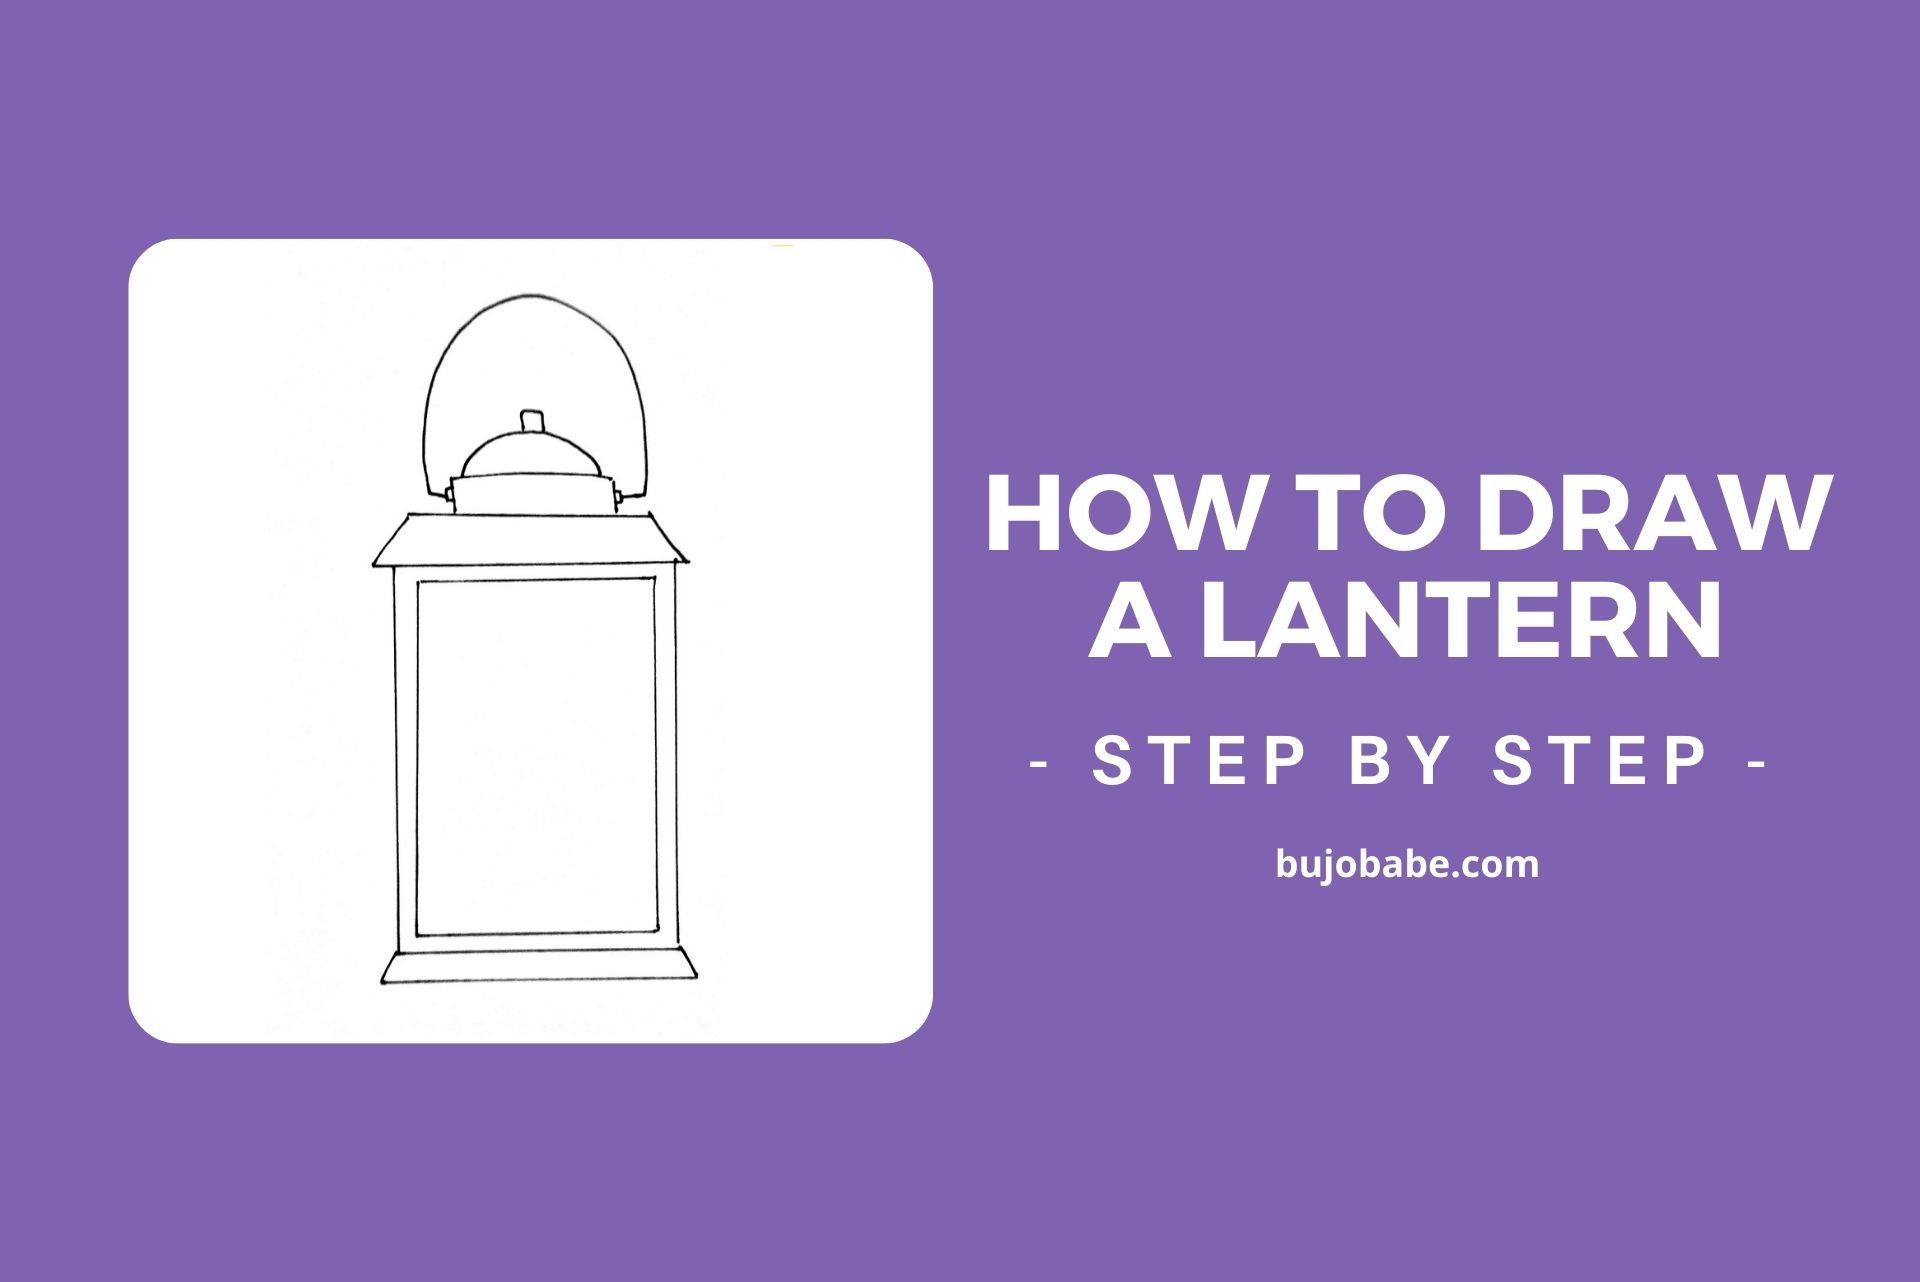 how to draw a lantern step by step